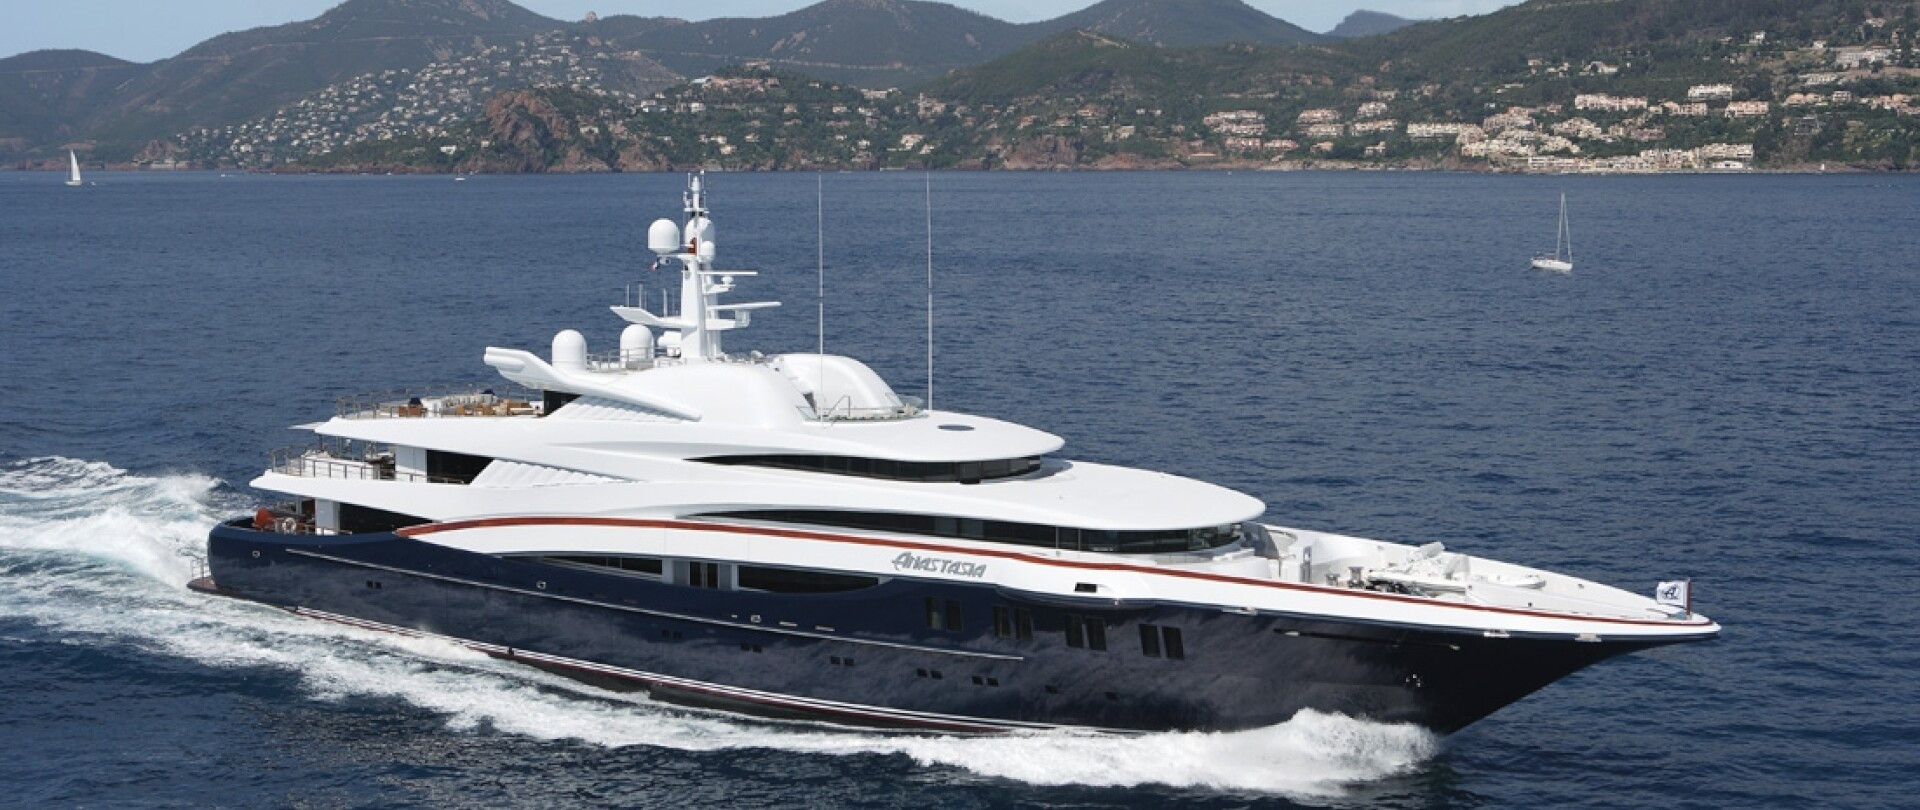 Superyachts ANASTASIA and ALDABRA to Attend Singapore Yacht Show 2015 photo 1